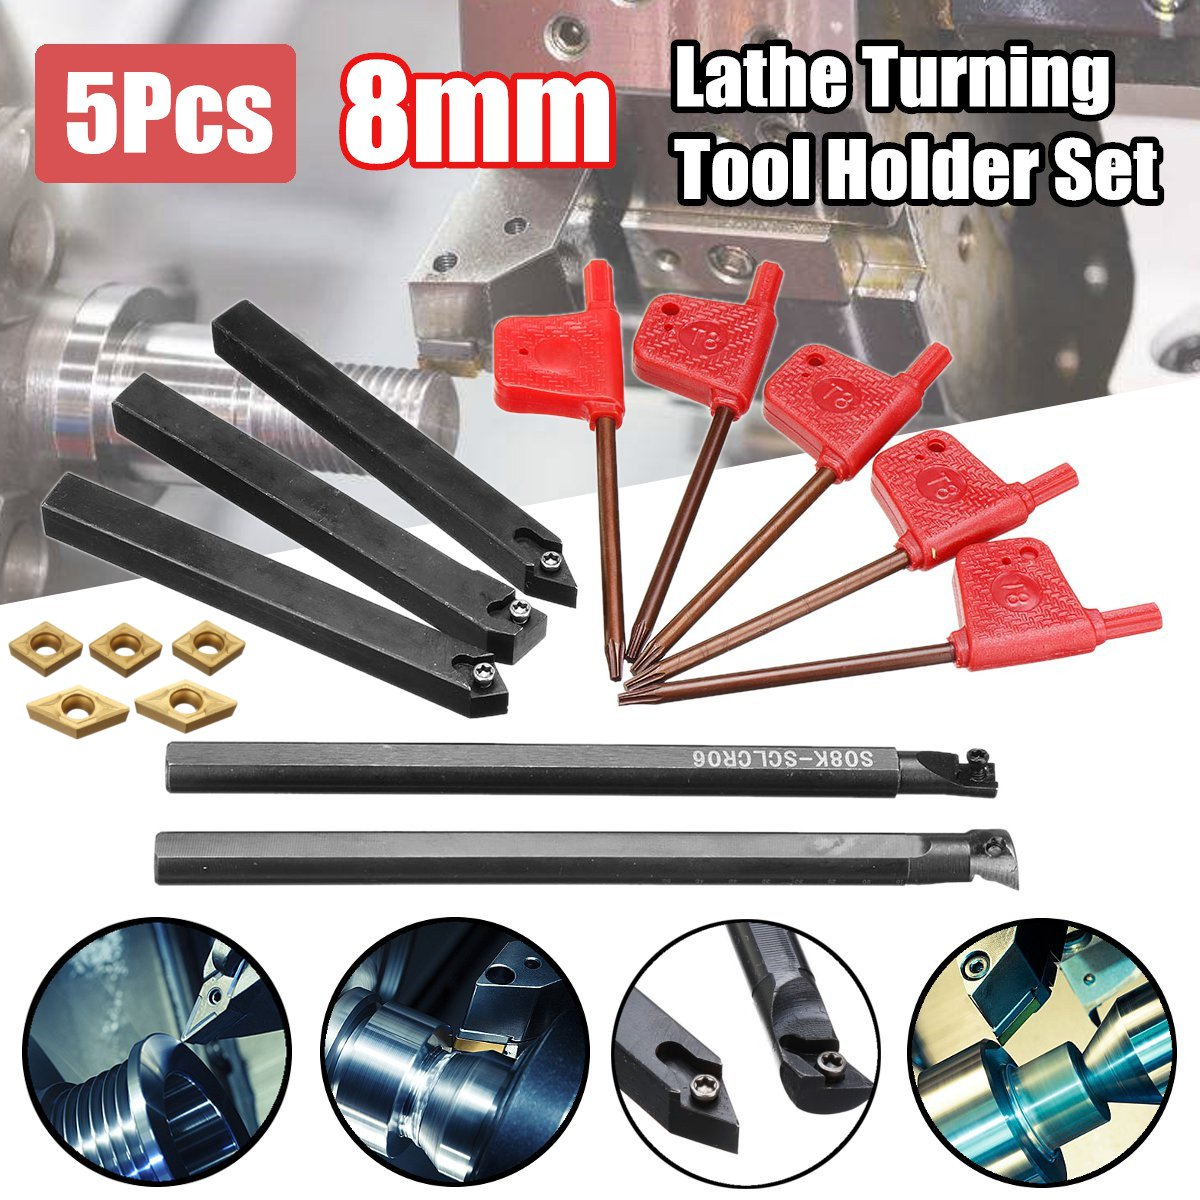 Top SaleLathe-Turning-Tool-Holder CCMT060204 Carbide-Inserts Cnc-Machine 8mm 5pcs with for New-Arrival